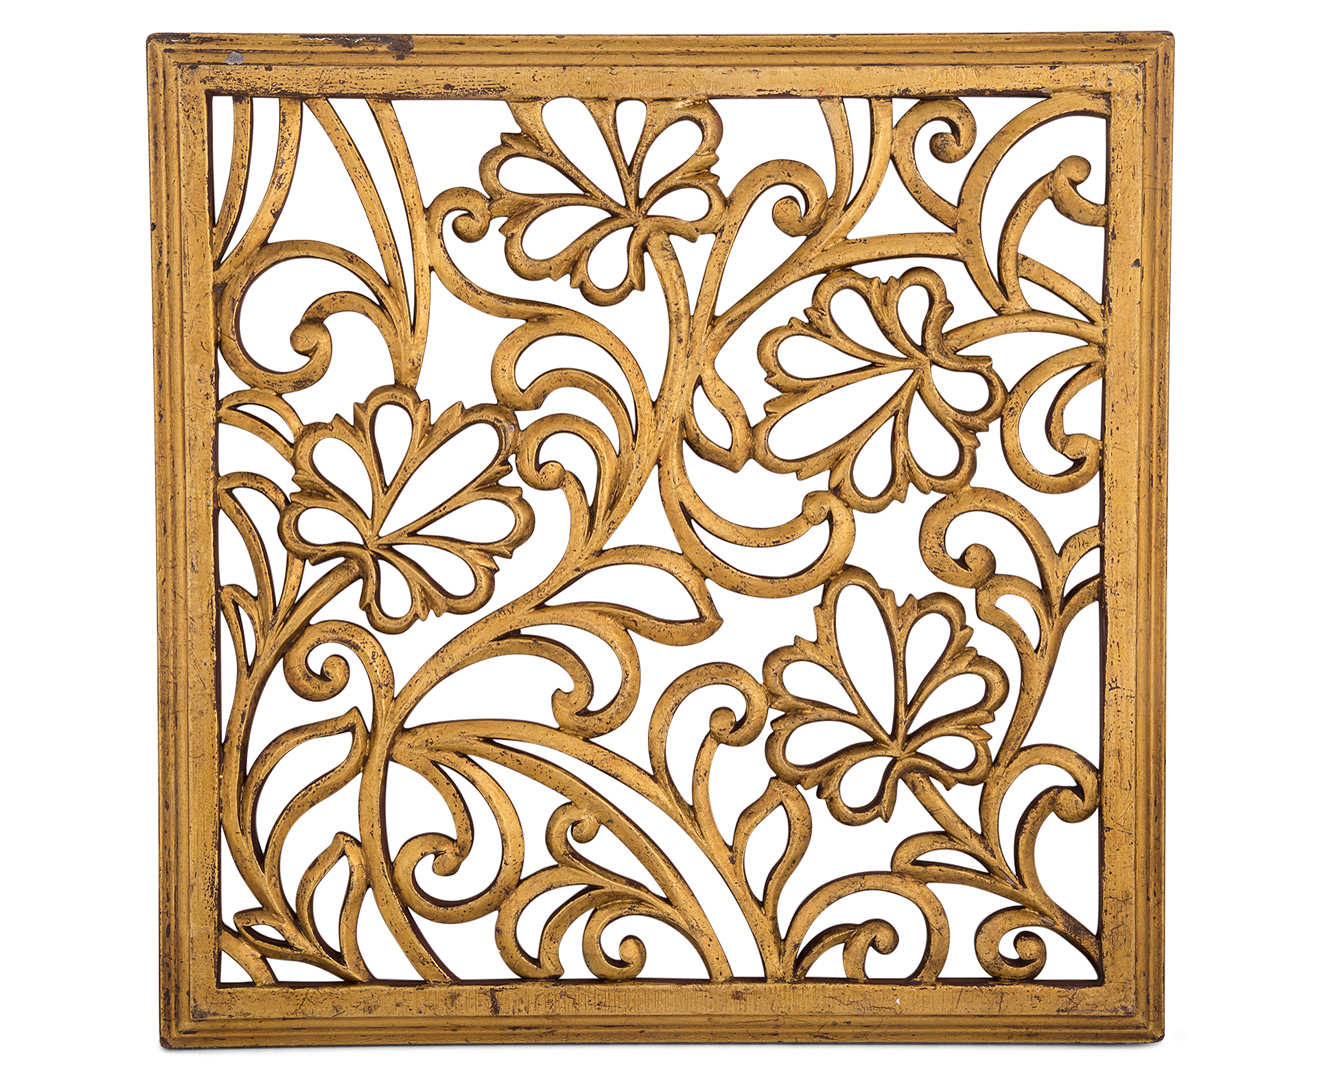 Brushed Gold Wall Decor : Catch elemental gold brushed wood carved wall art